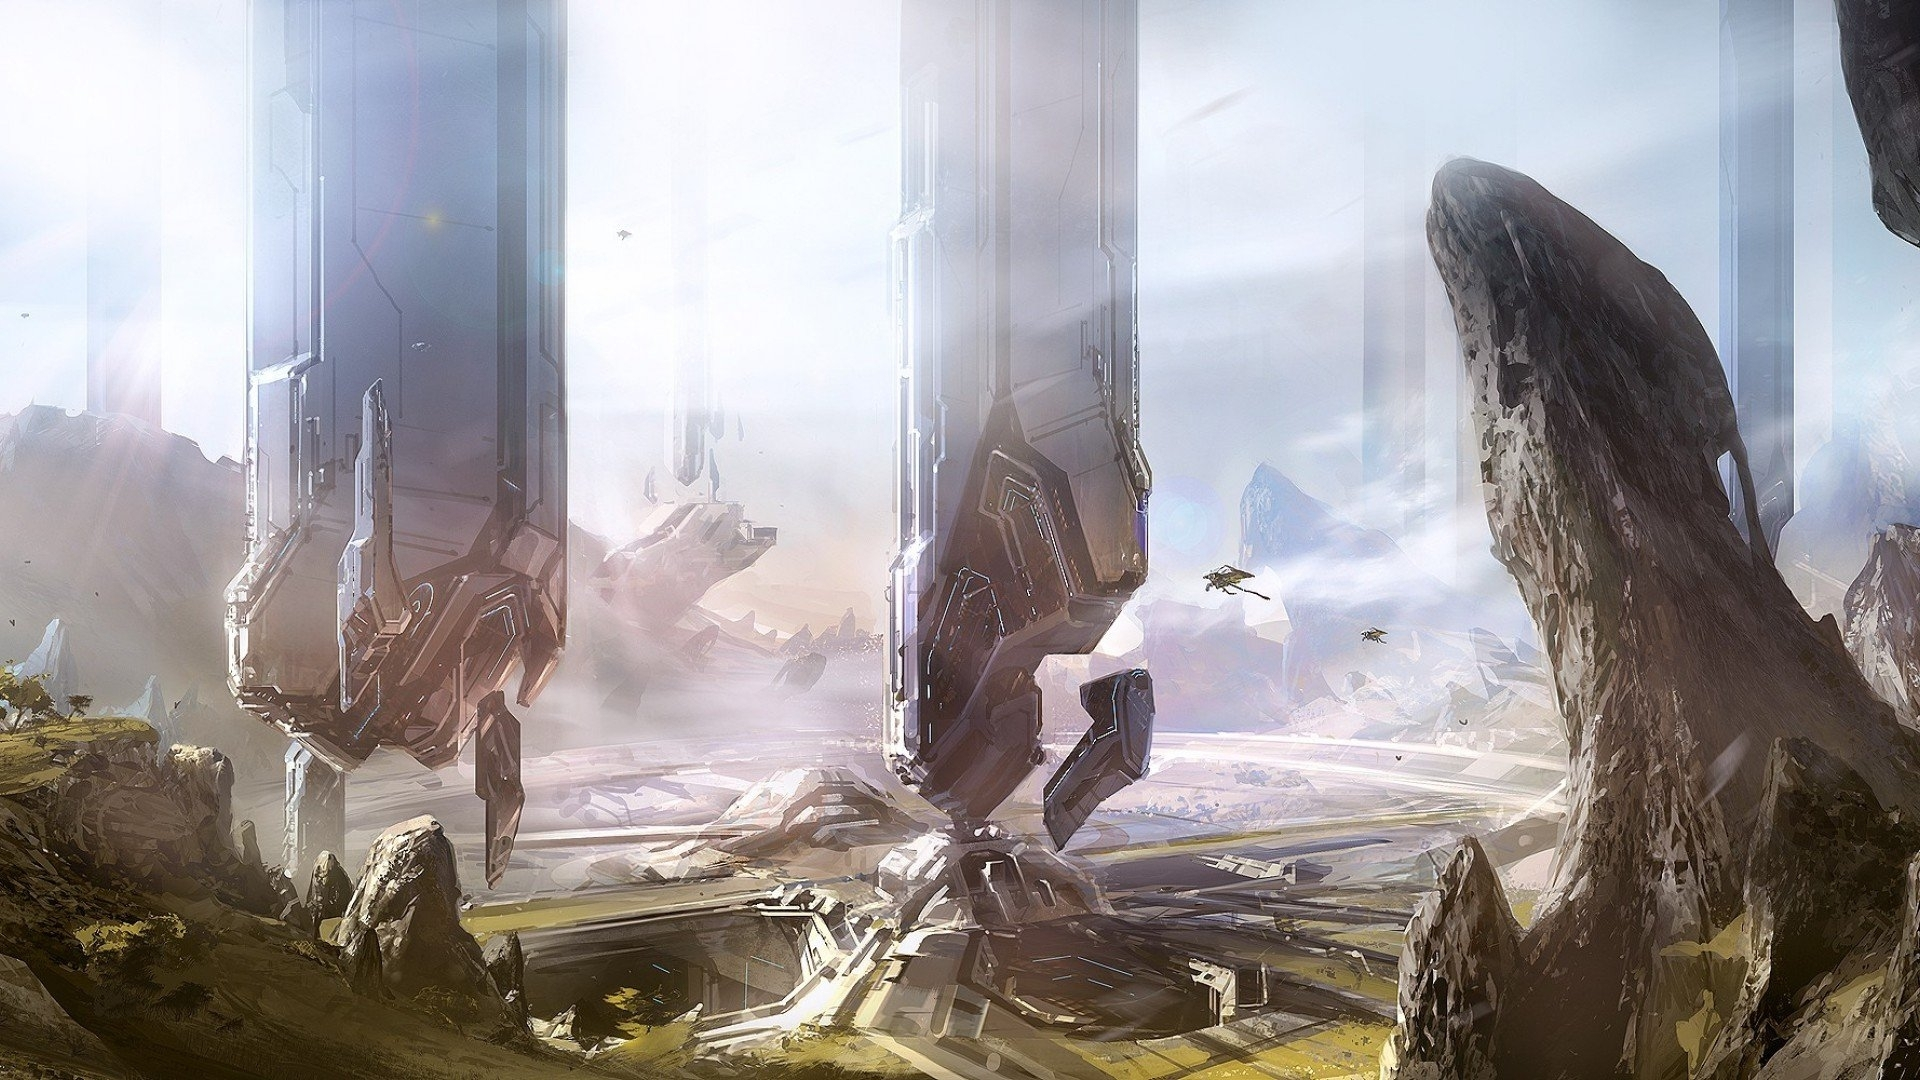 wallpaper.wiki-amazing-concept-art-game-1920x1080-pic-wpb0012254